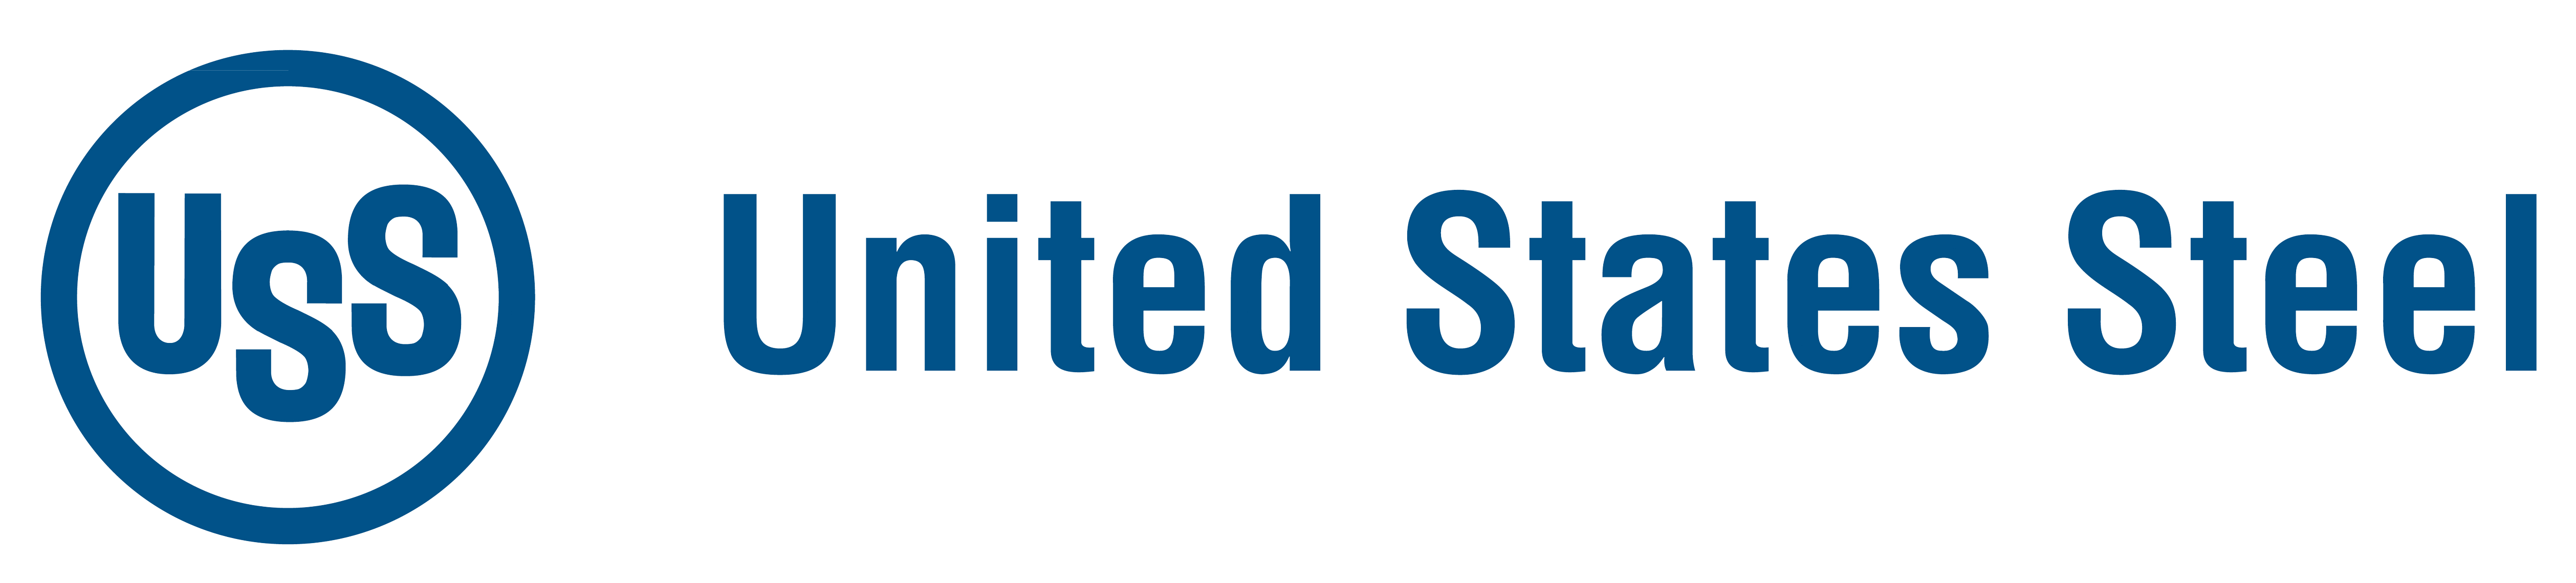 United States Steel Corporation Logo